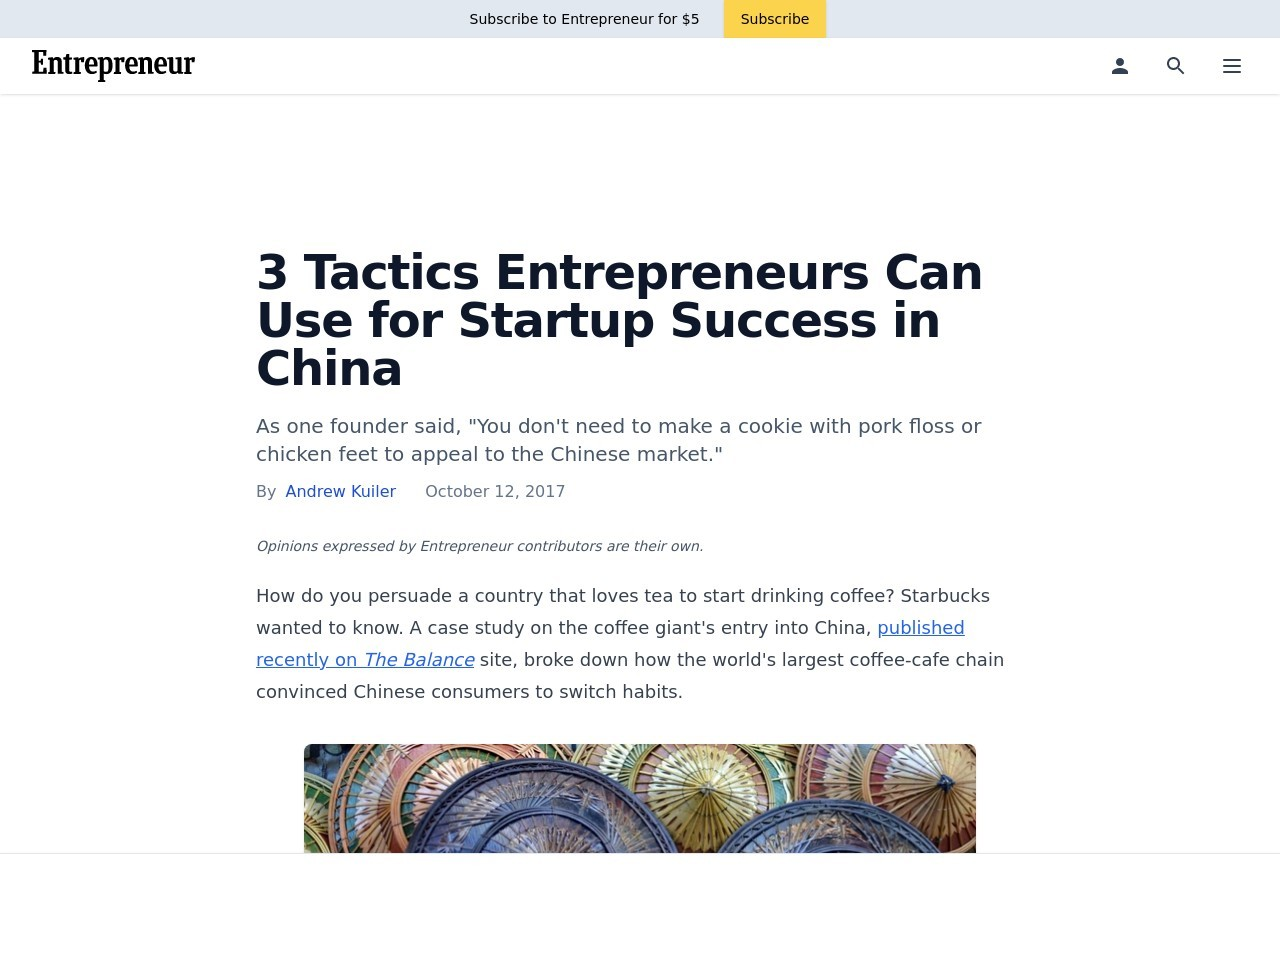 3 Tactics Entrepreneurs Can Use for Startup Success in China